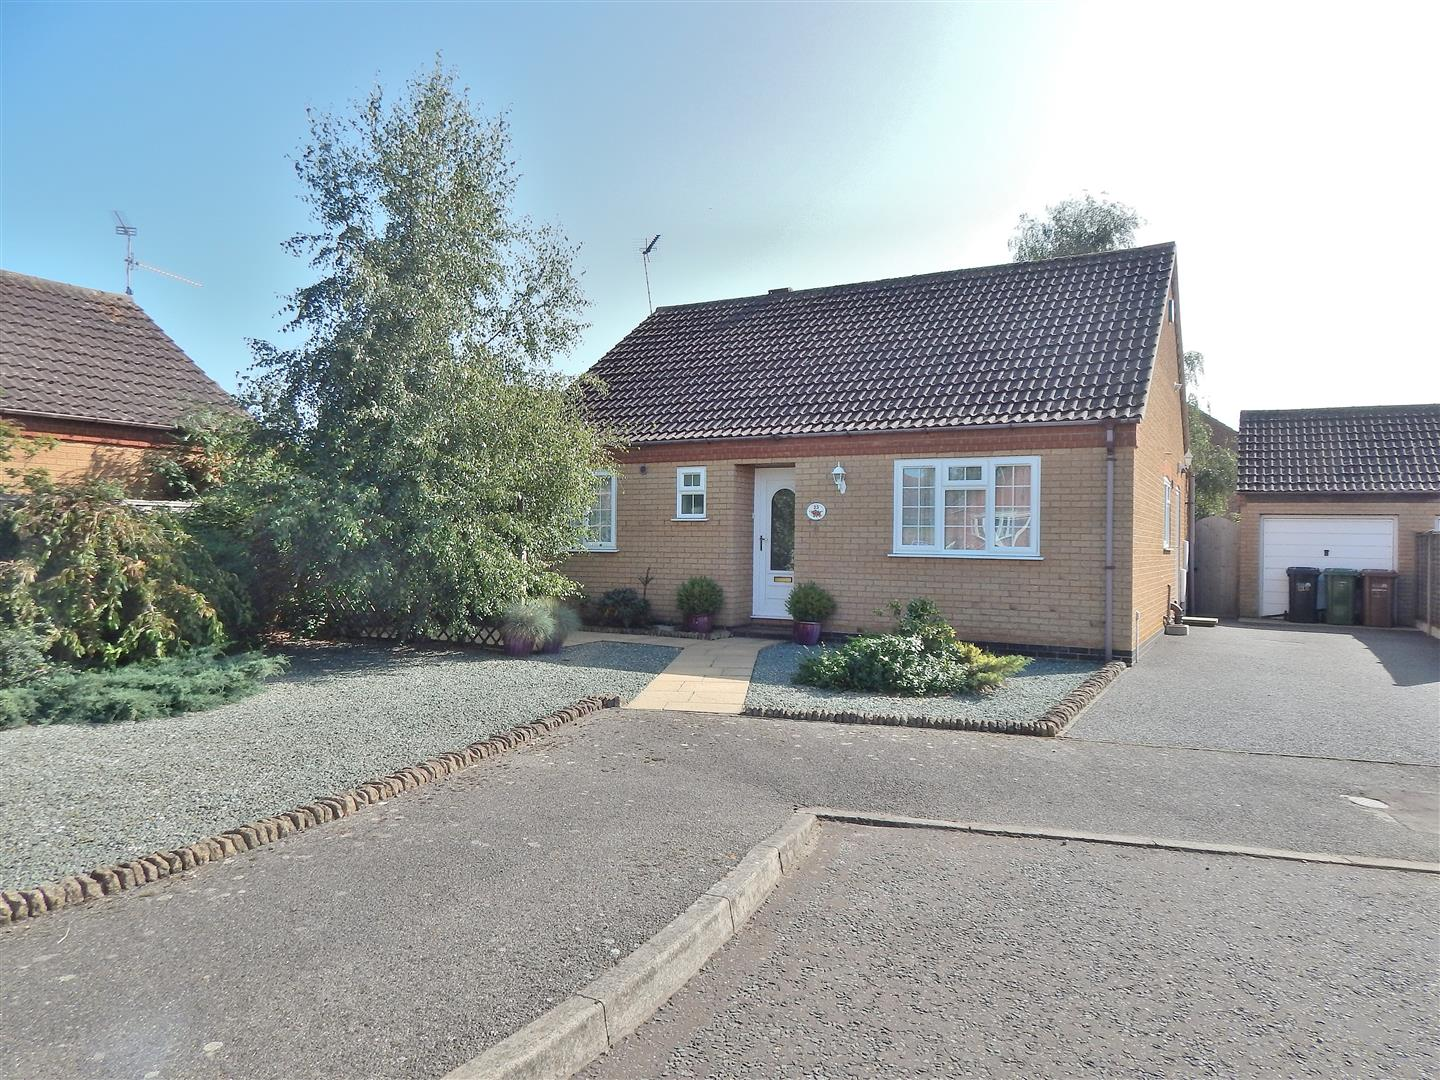 3 bed detached bungalow for sale in King's Lynn, PE31 6UU, PE31